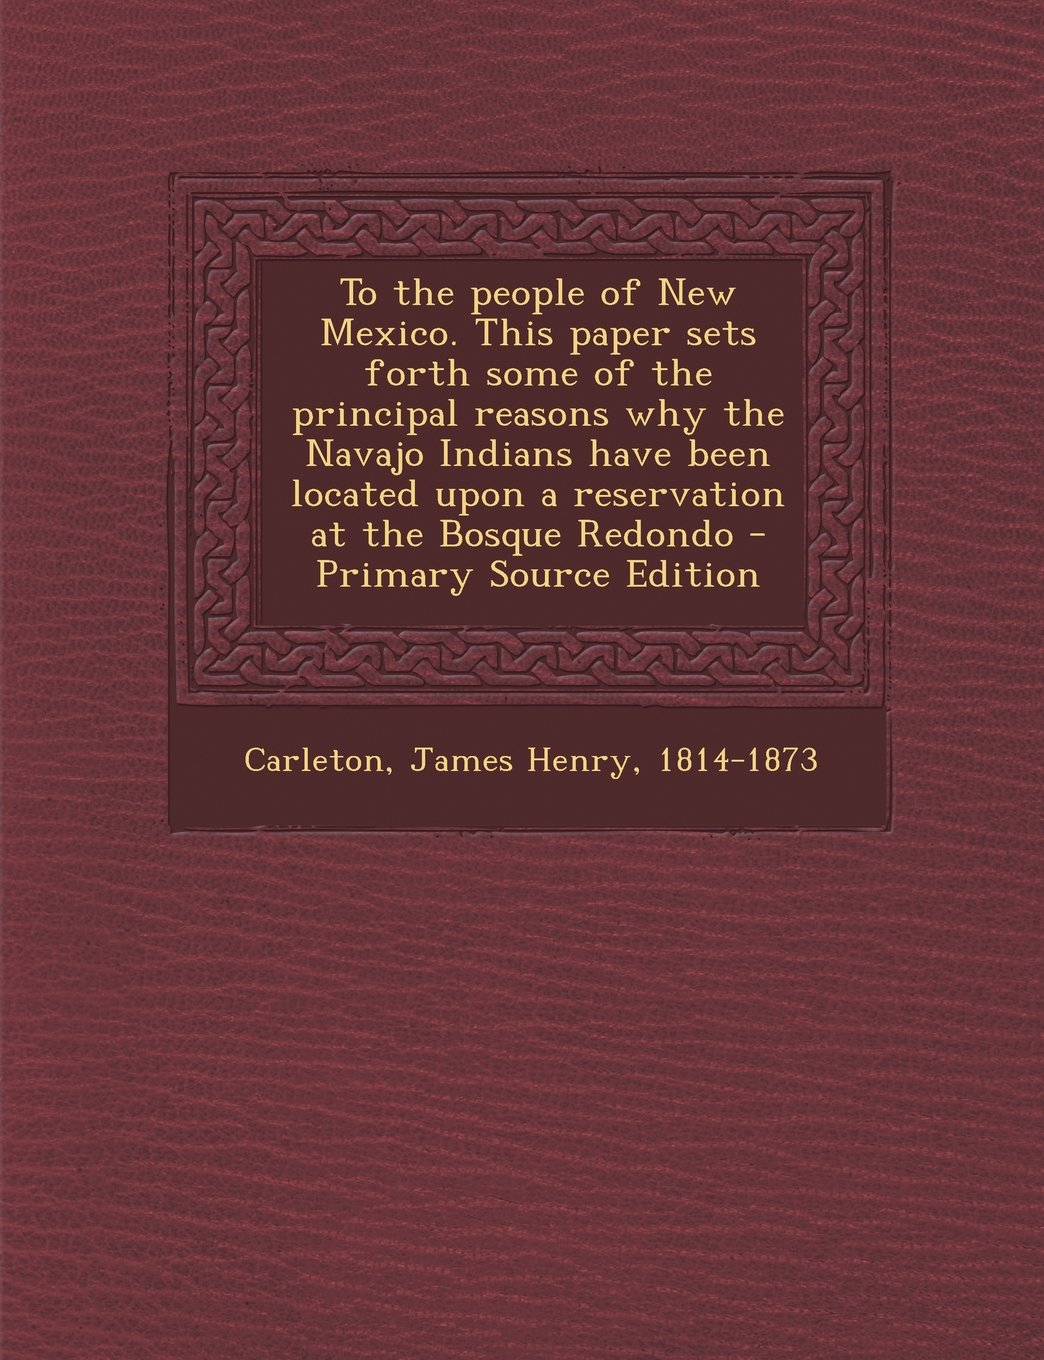 Read Online To the people of New Mexico. This paper sets forth some of the principal reasons why the Navajo Indians have been located upon a reservation at the Bosque Redondo - Primary Source Edition ebook